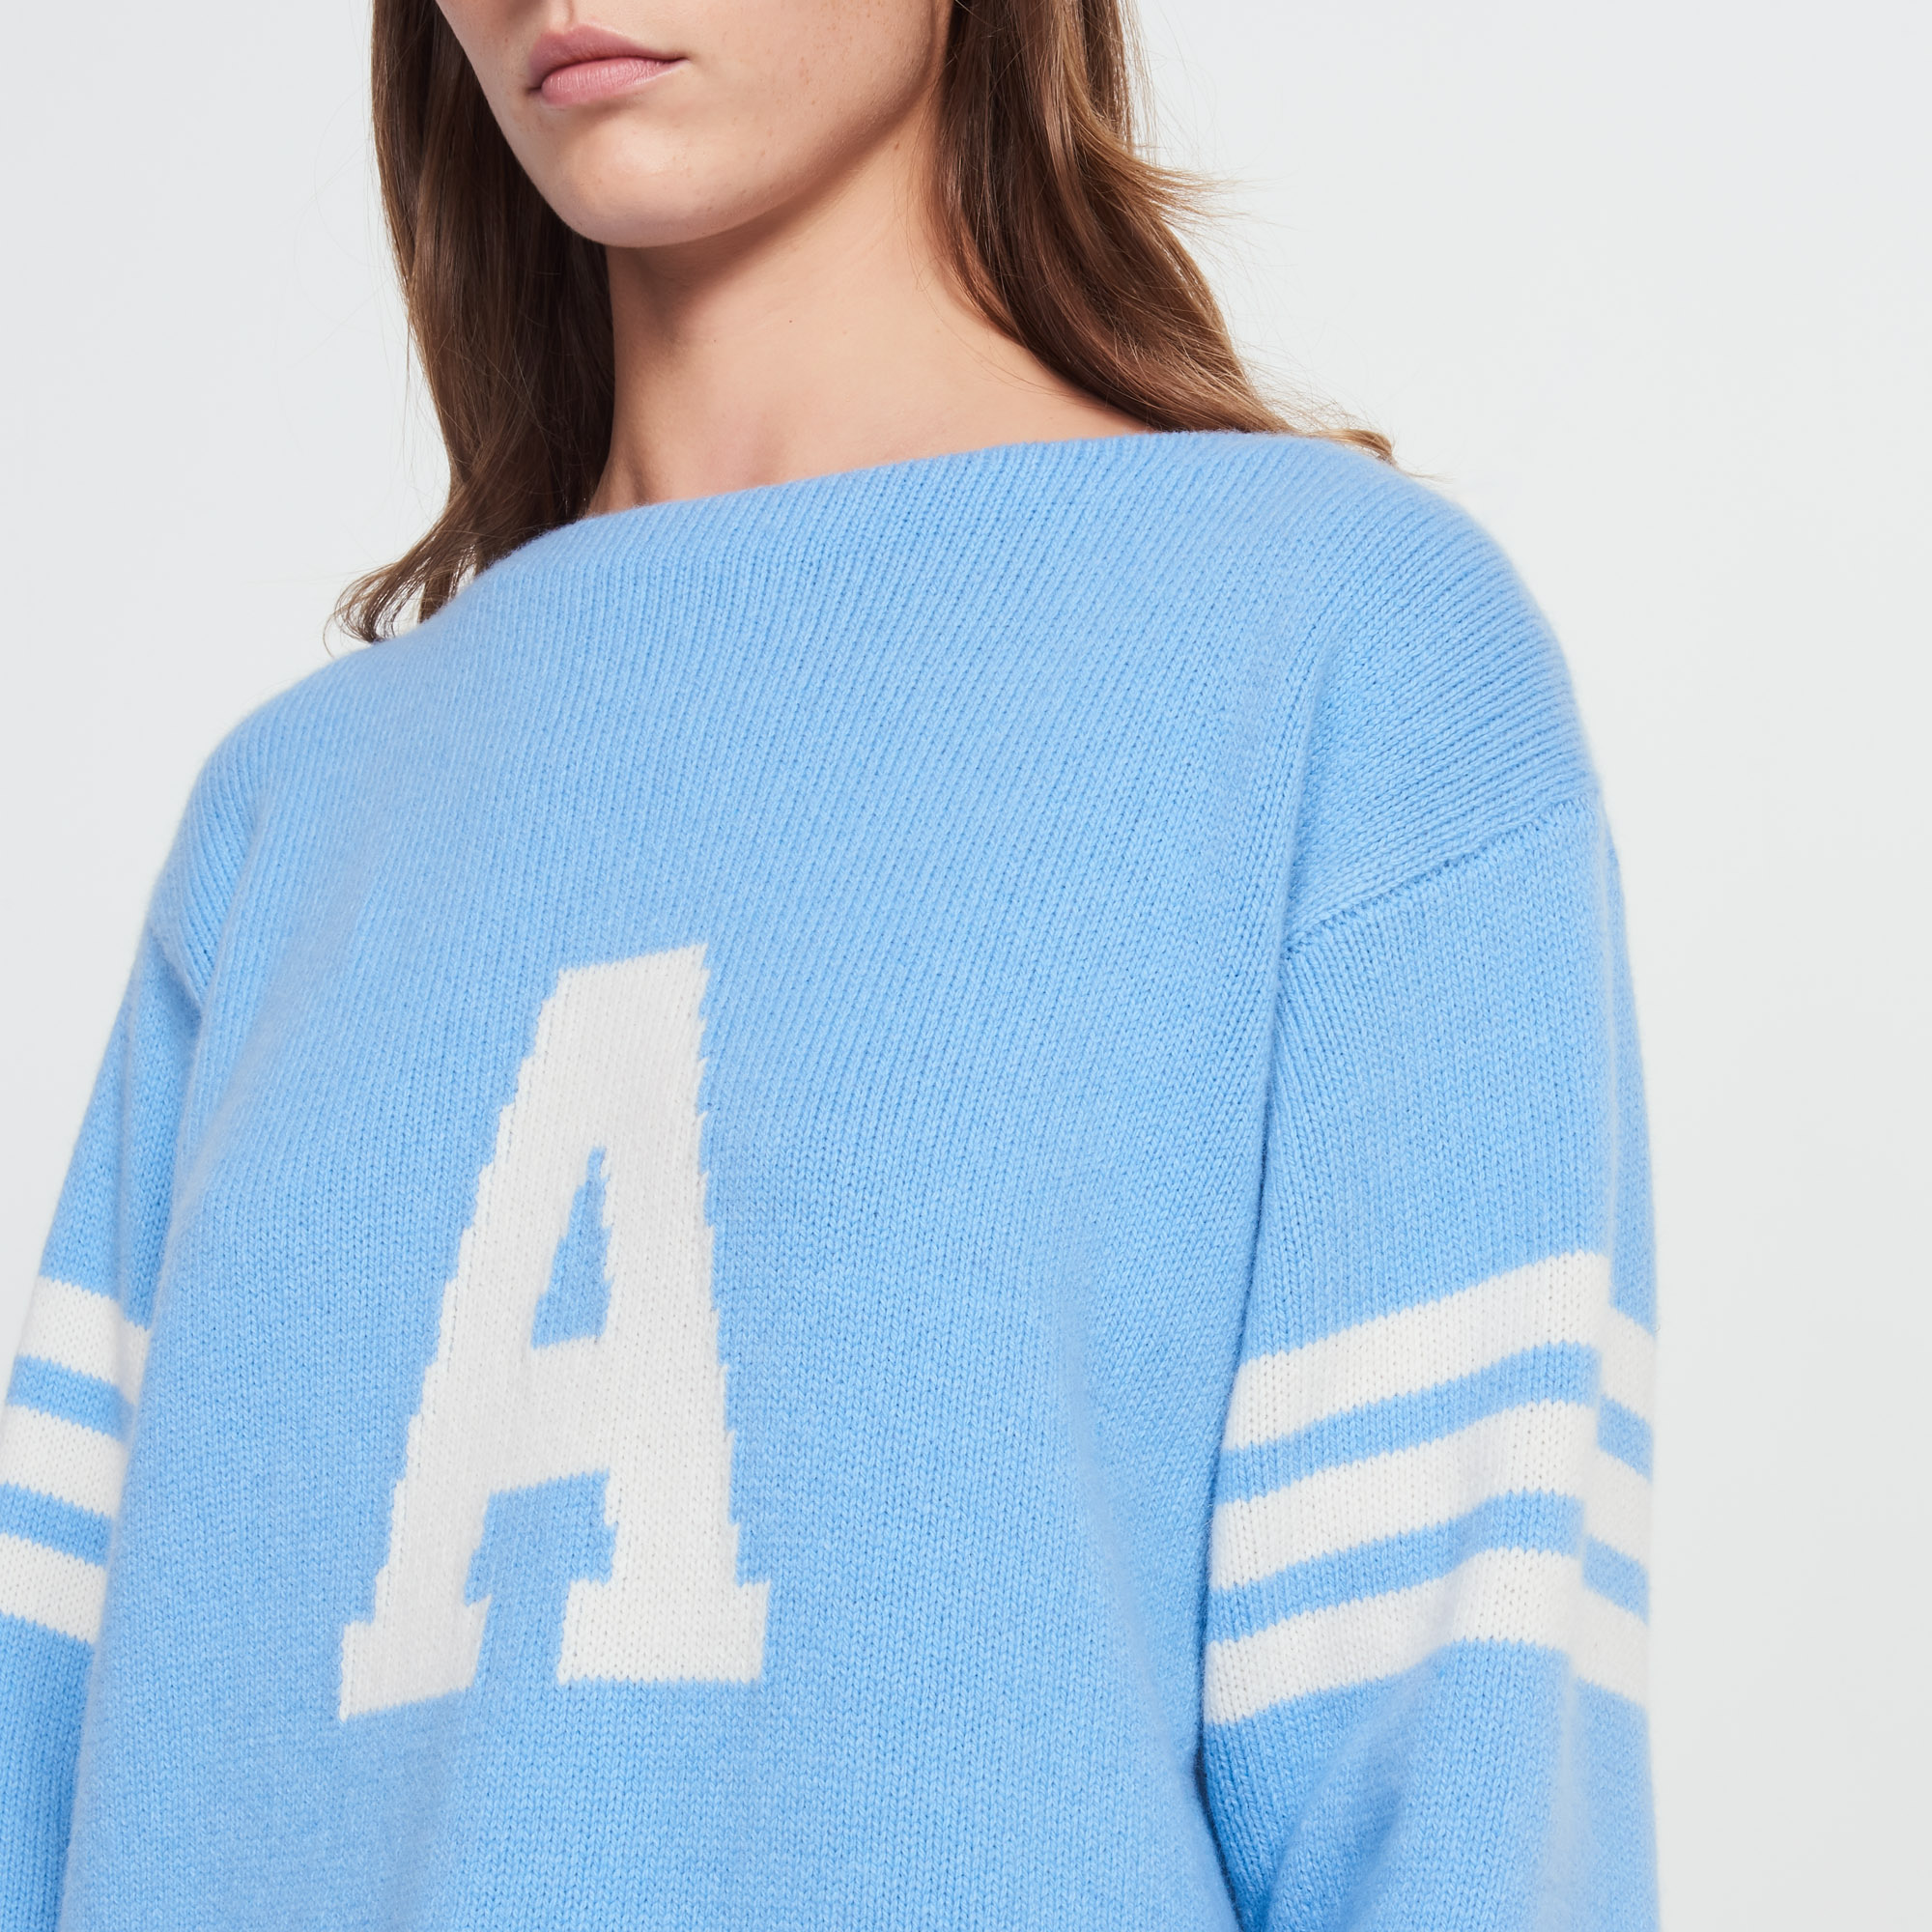 Wool and cashmere sweater with letter - Sweaters & Cardigans ...